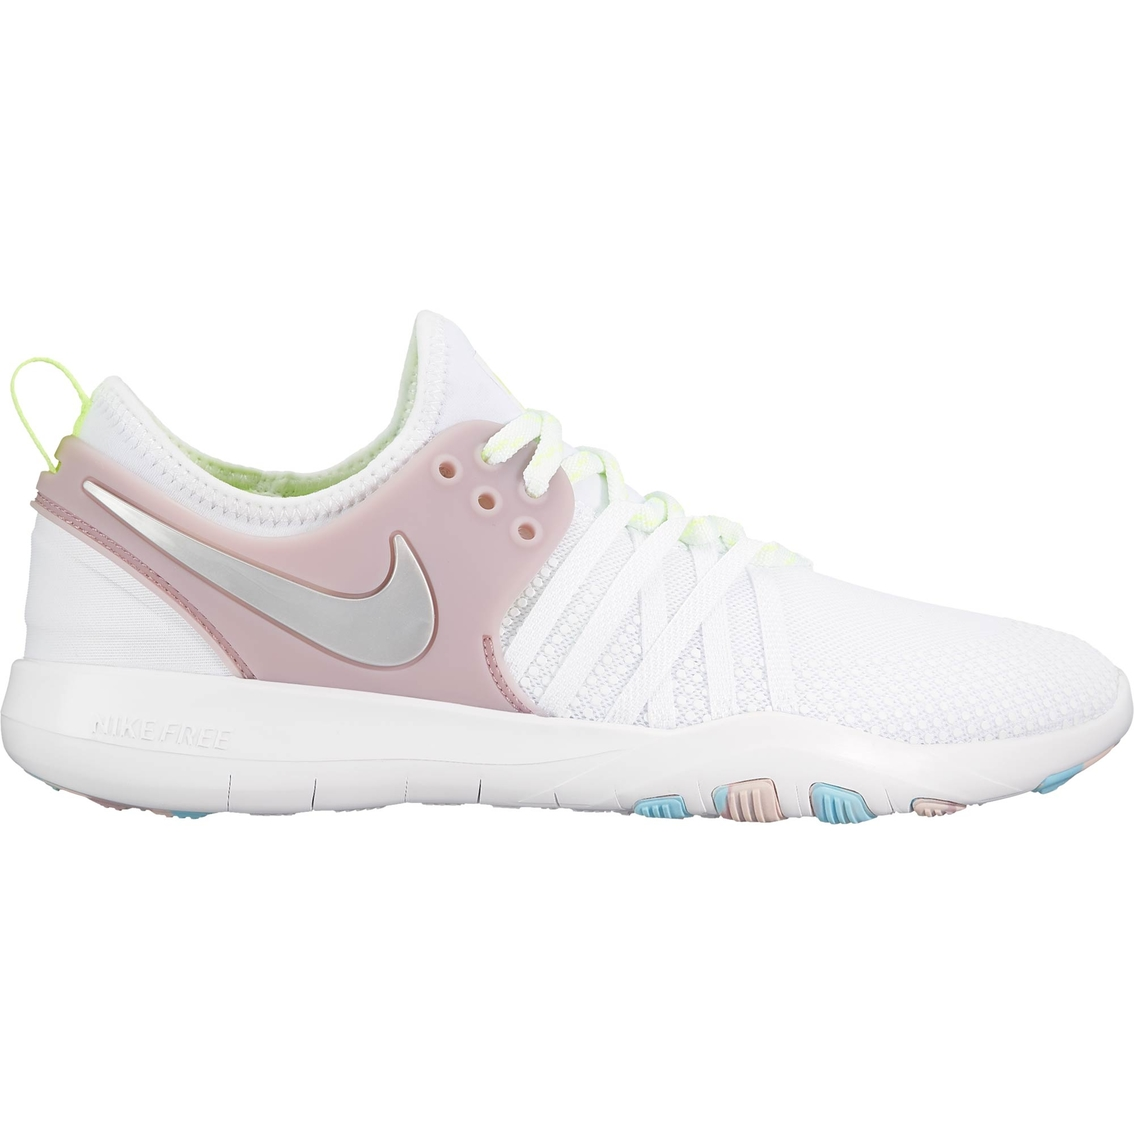 93ddc96d755a0 Nike Women s Free Tr7 Amp Training Shoes